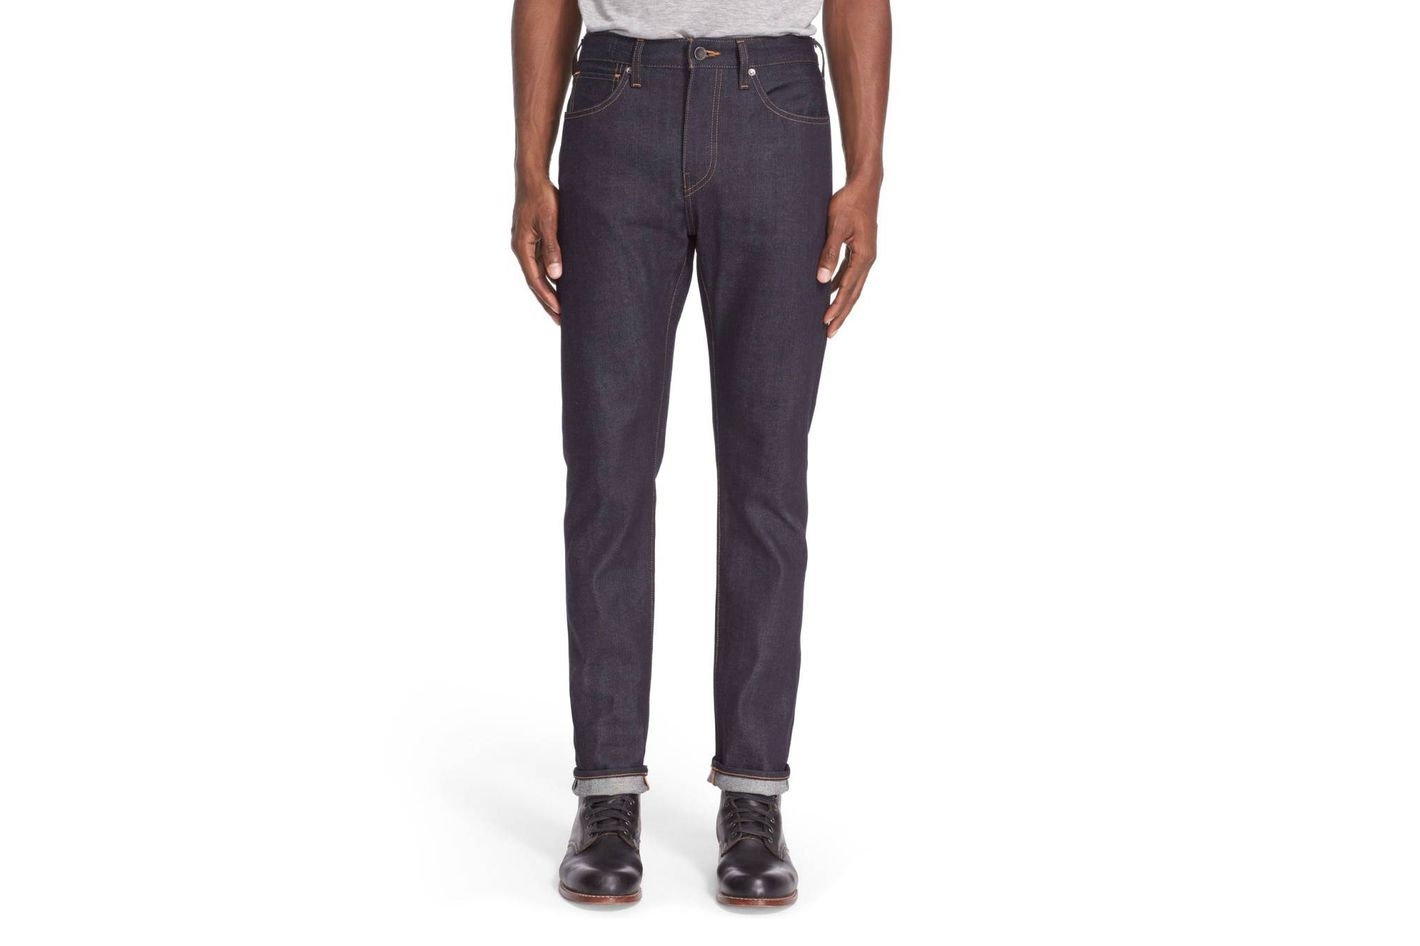 a1579dcc8cd The 11 Best Pairs of High-Rise Jeans for Men